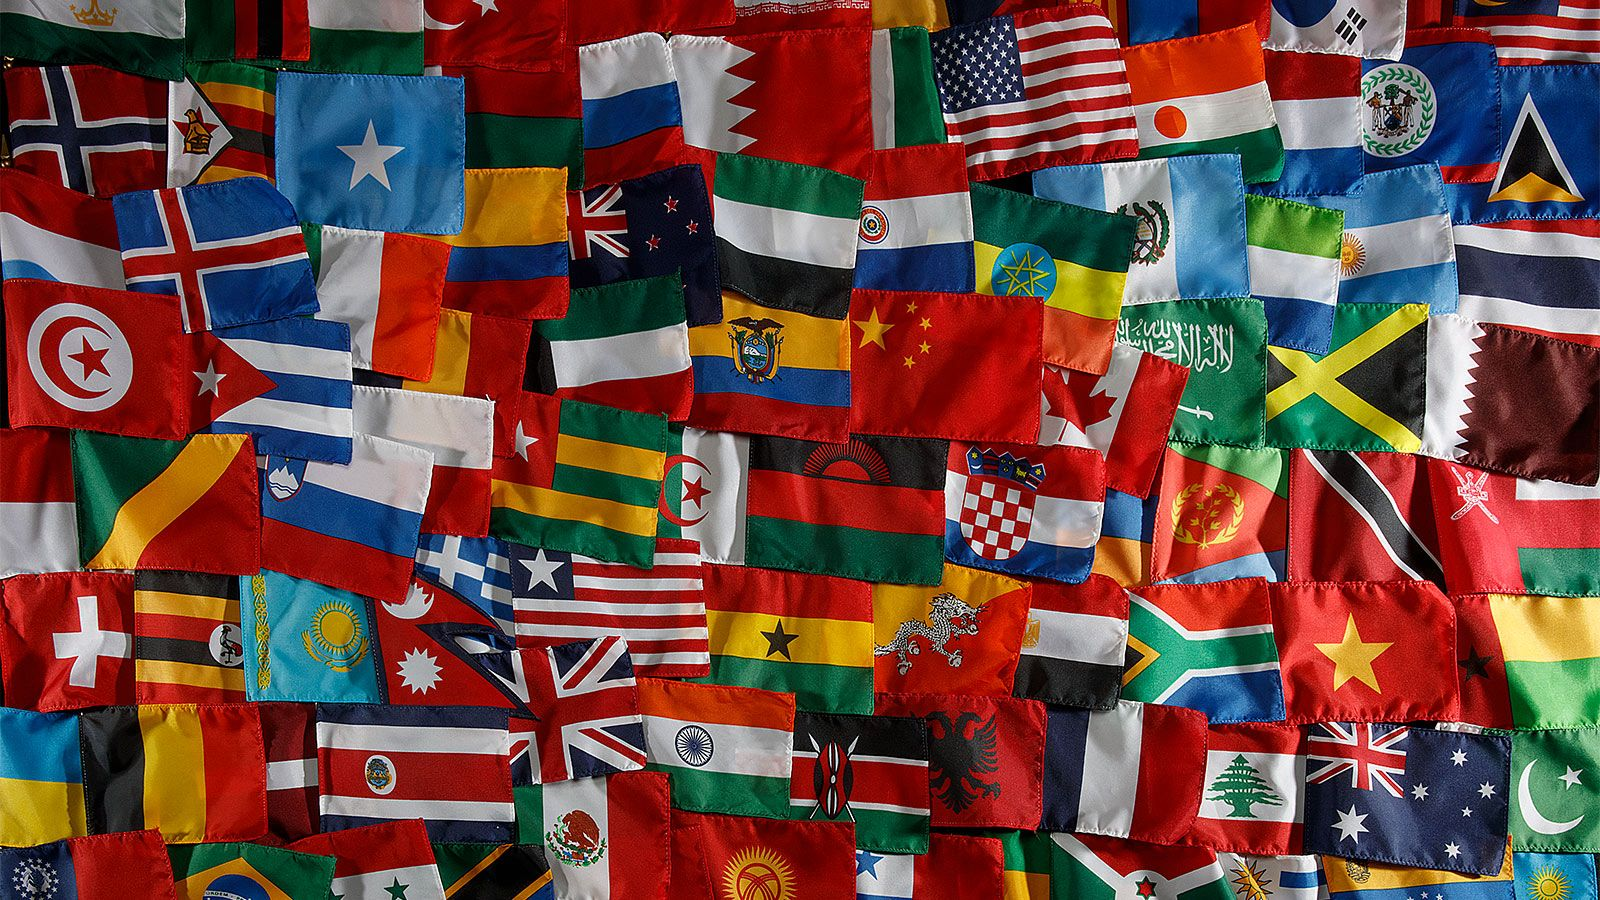 Flags from all over the world